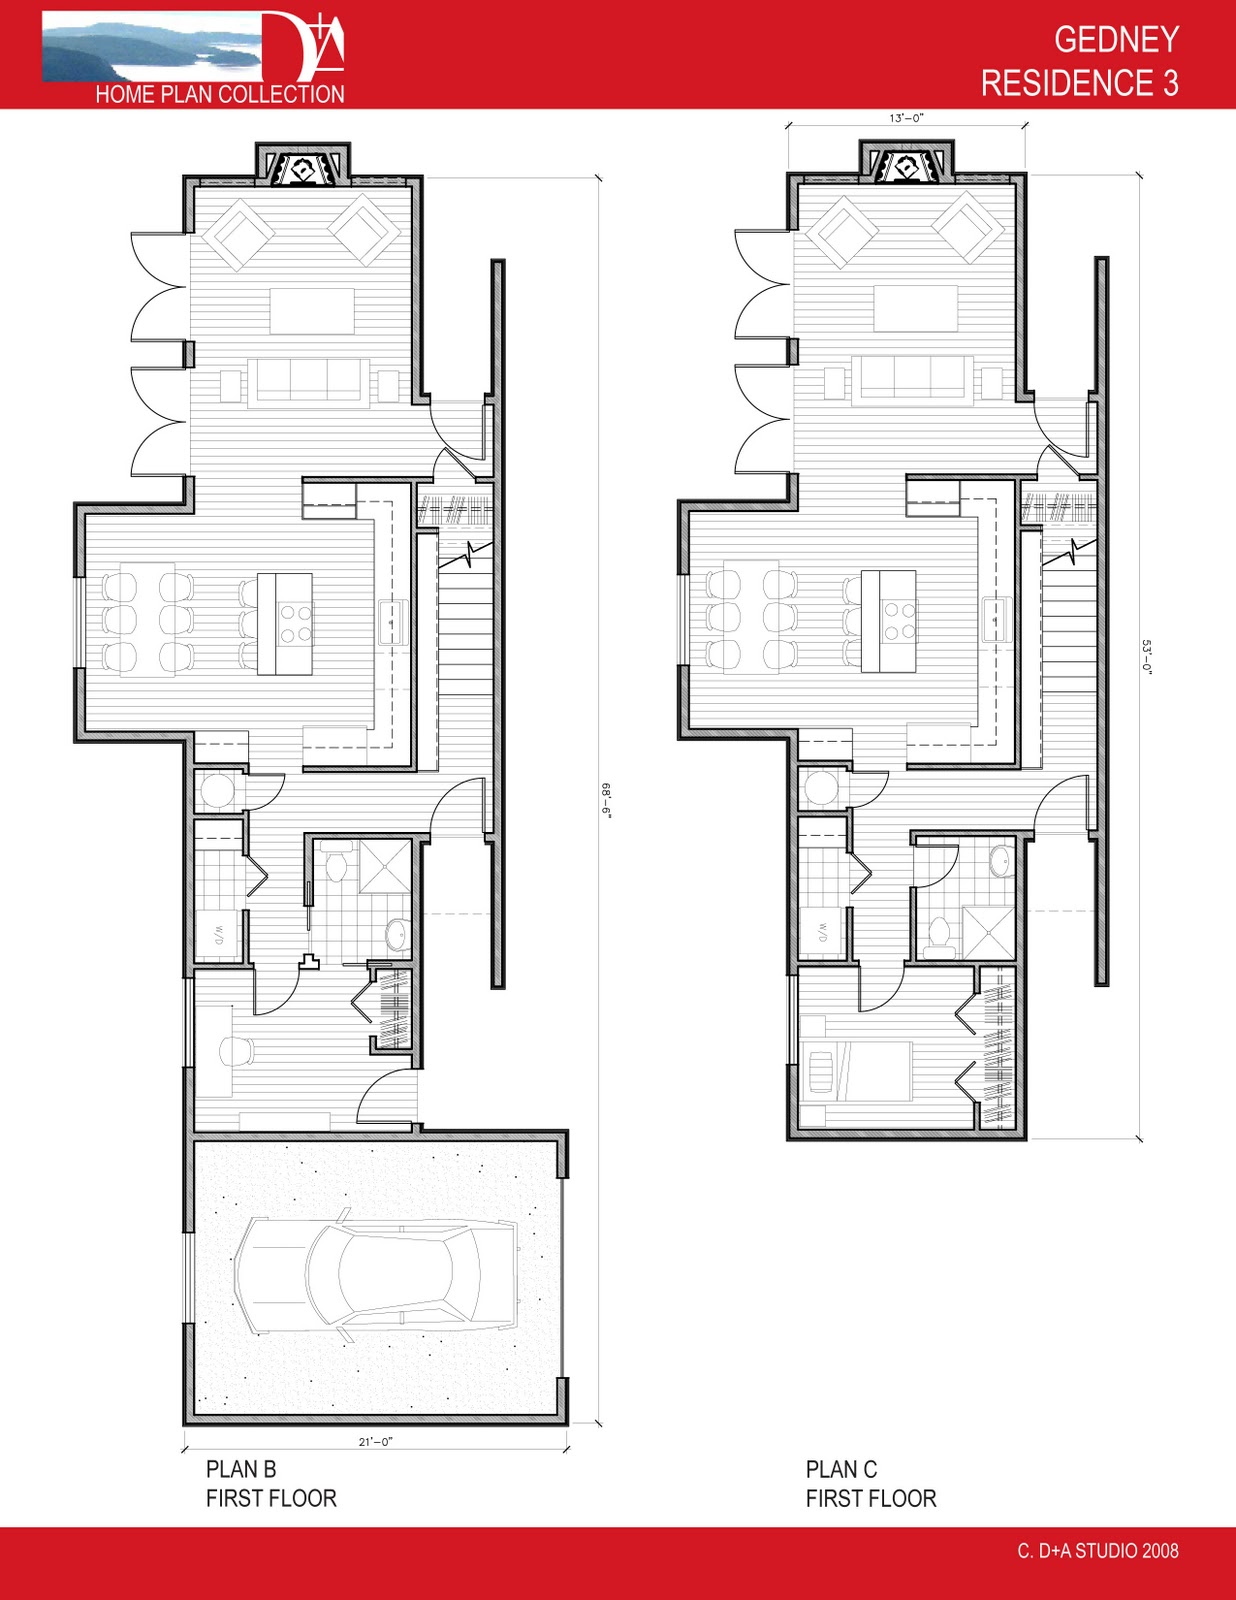 basement floor plans under 1000 sq ft house plans under 1000 square feet house plans 1300. Black Bedroom Furniture Sets. Home Design Ideas